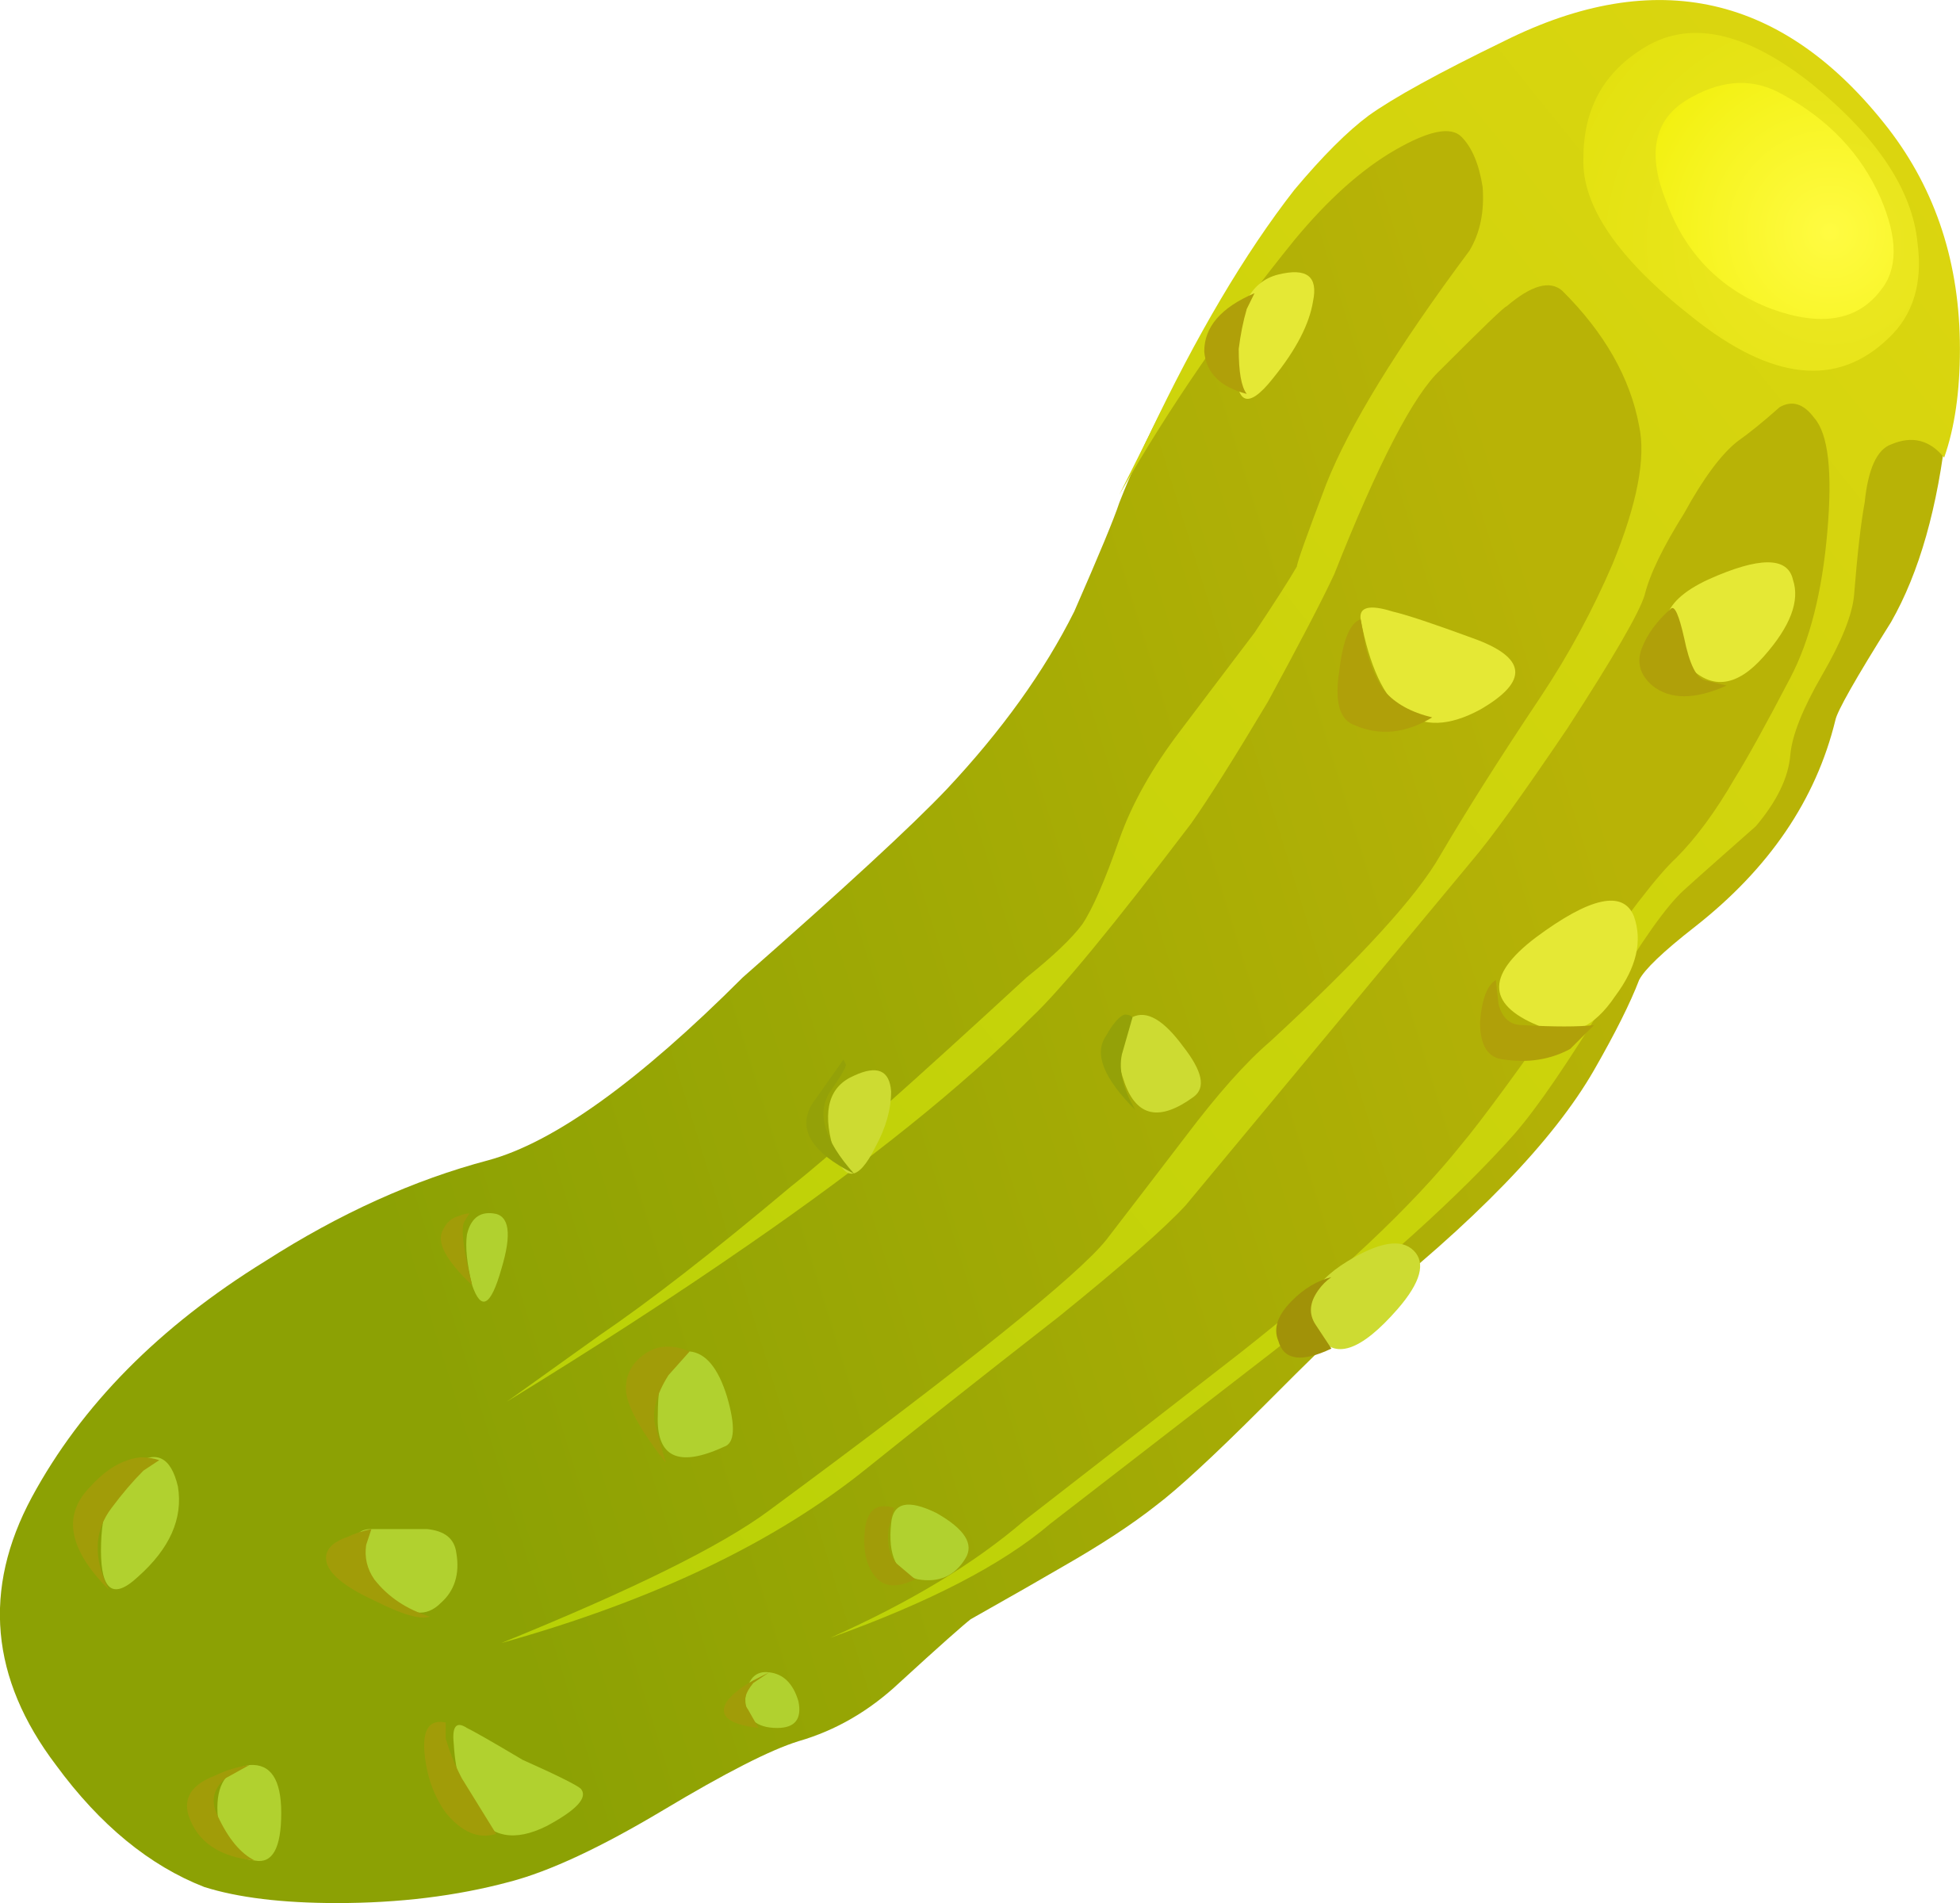 Free Pickles Cliparts, Download Free Clip Art, Free Clip Art.